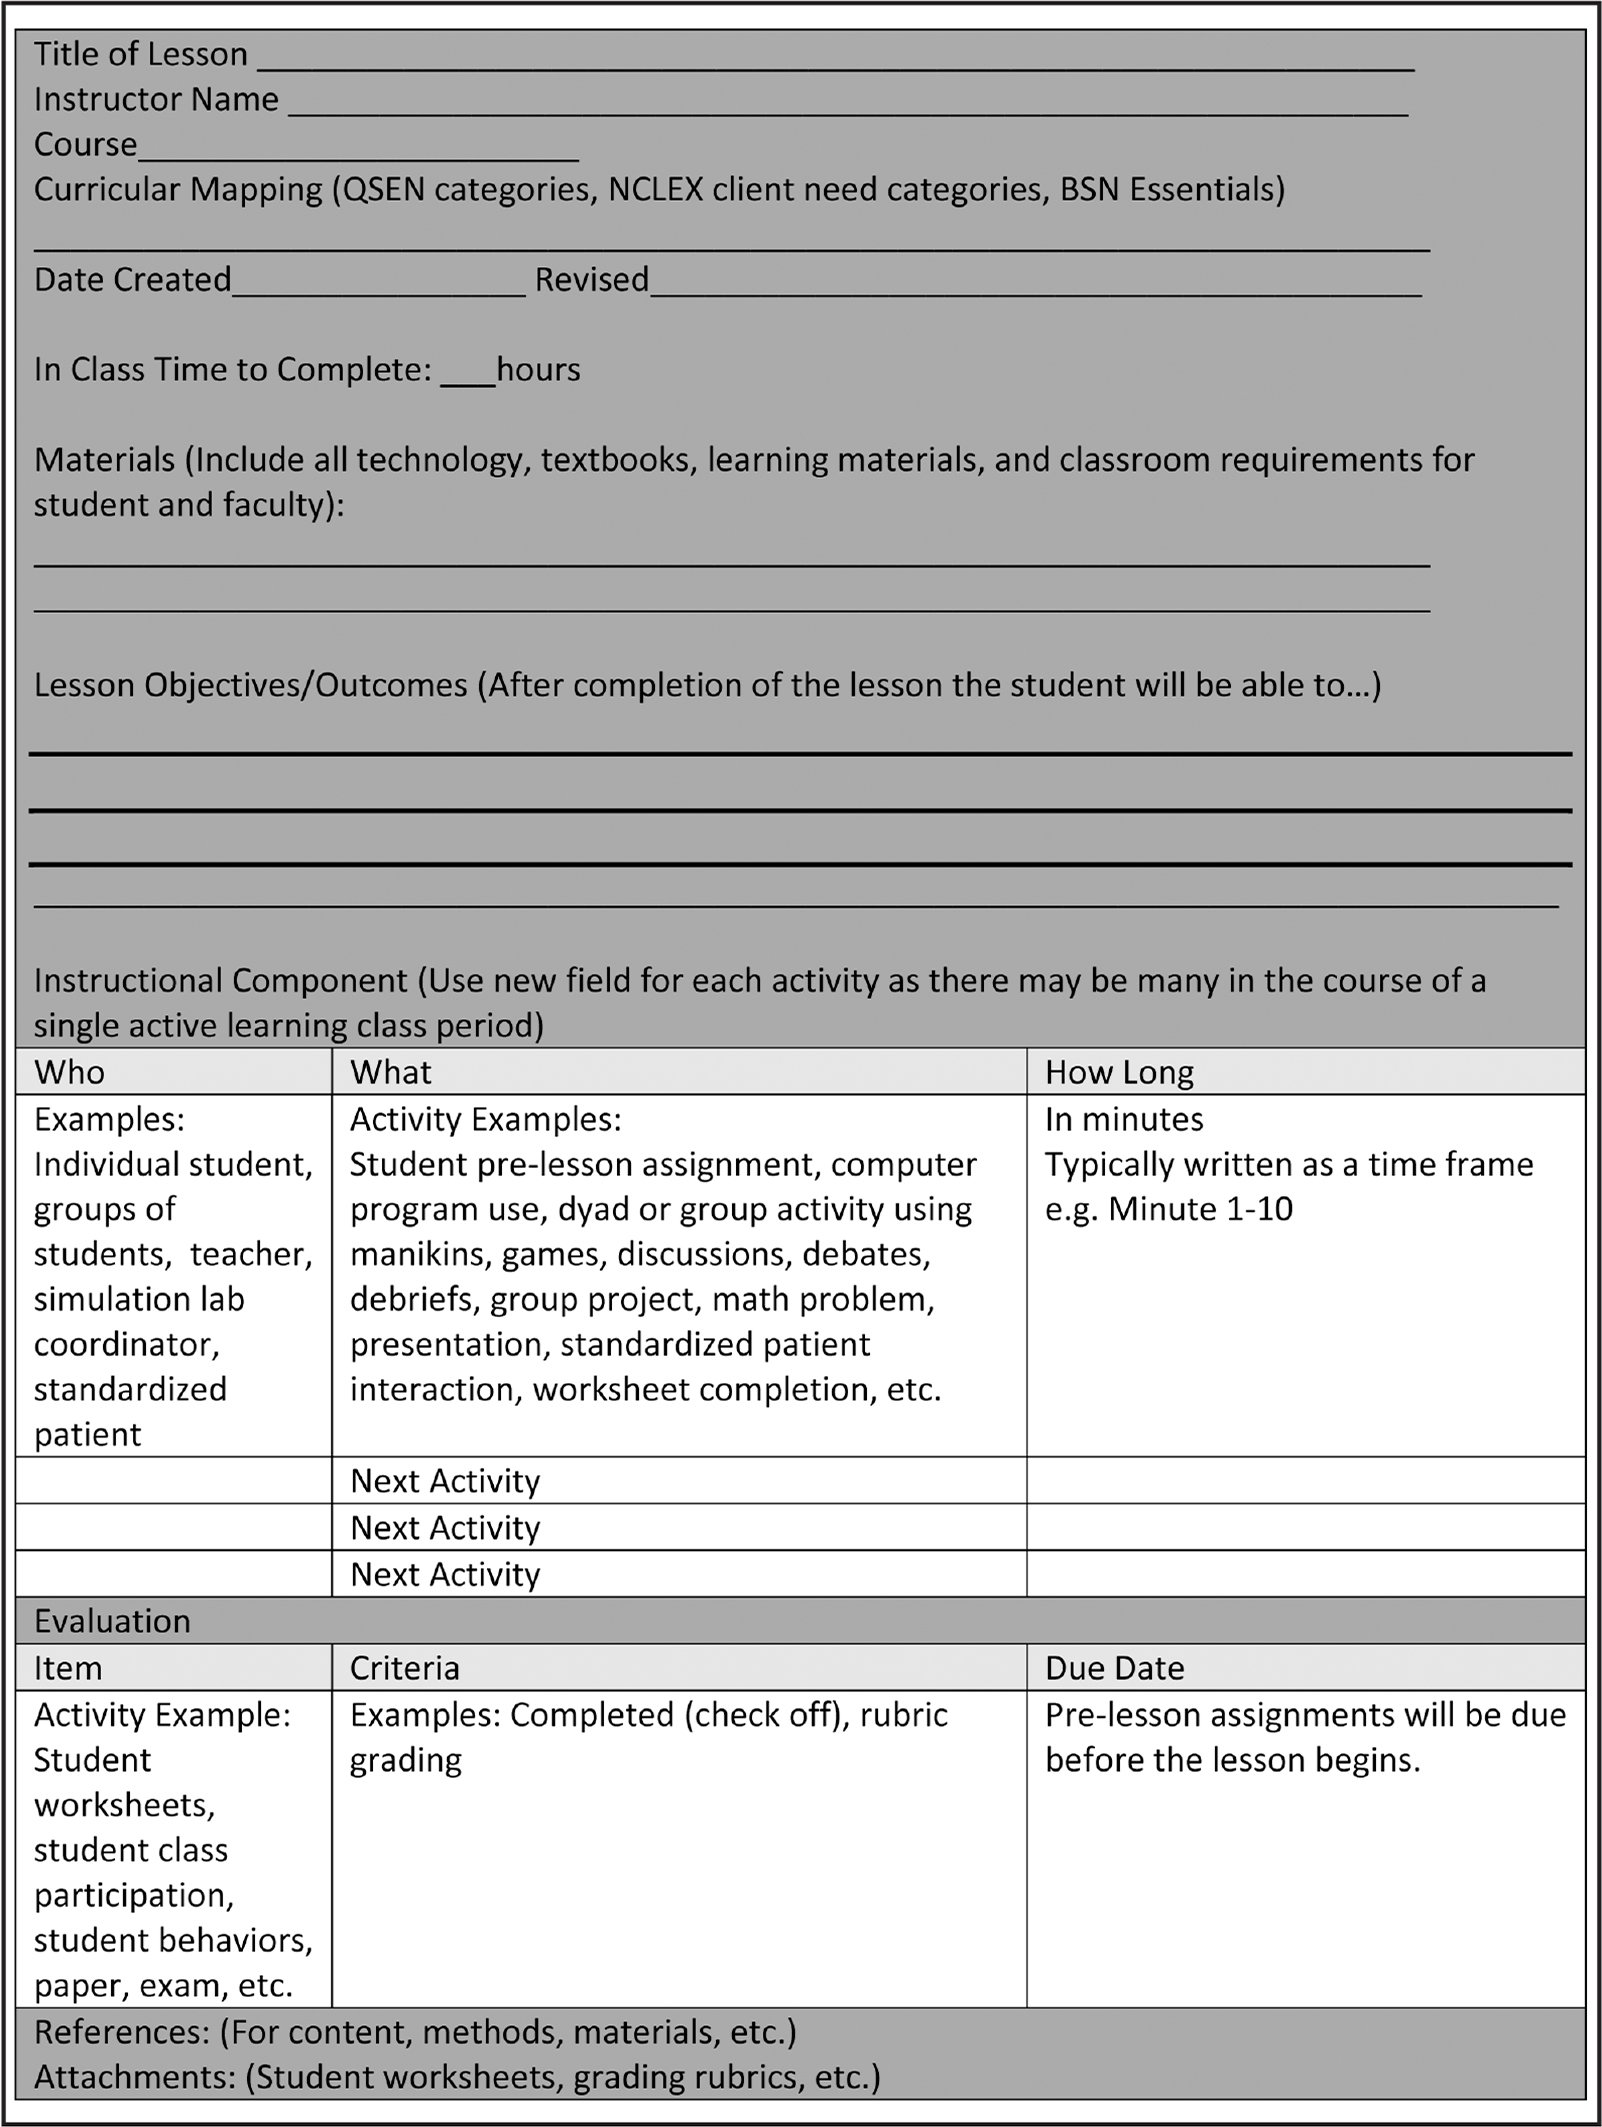 nursing lesson plan template - lesson plans road maps for the active learning classroom